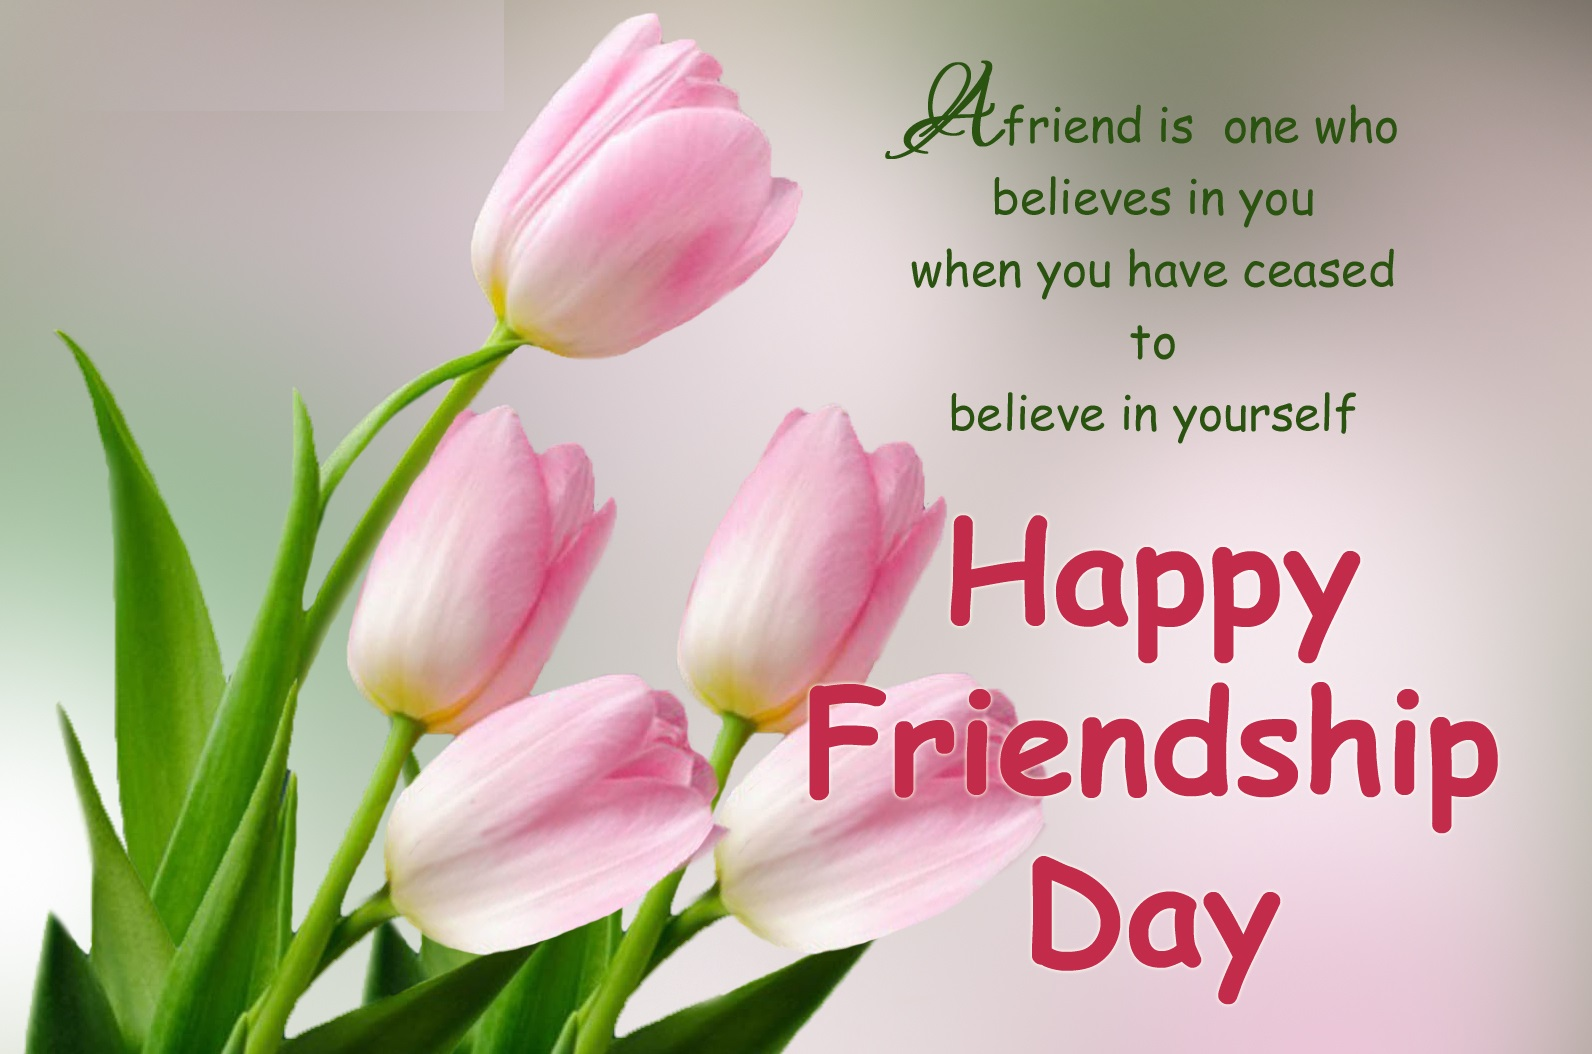 Friendship Day Cards and Messages